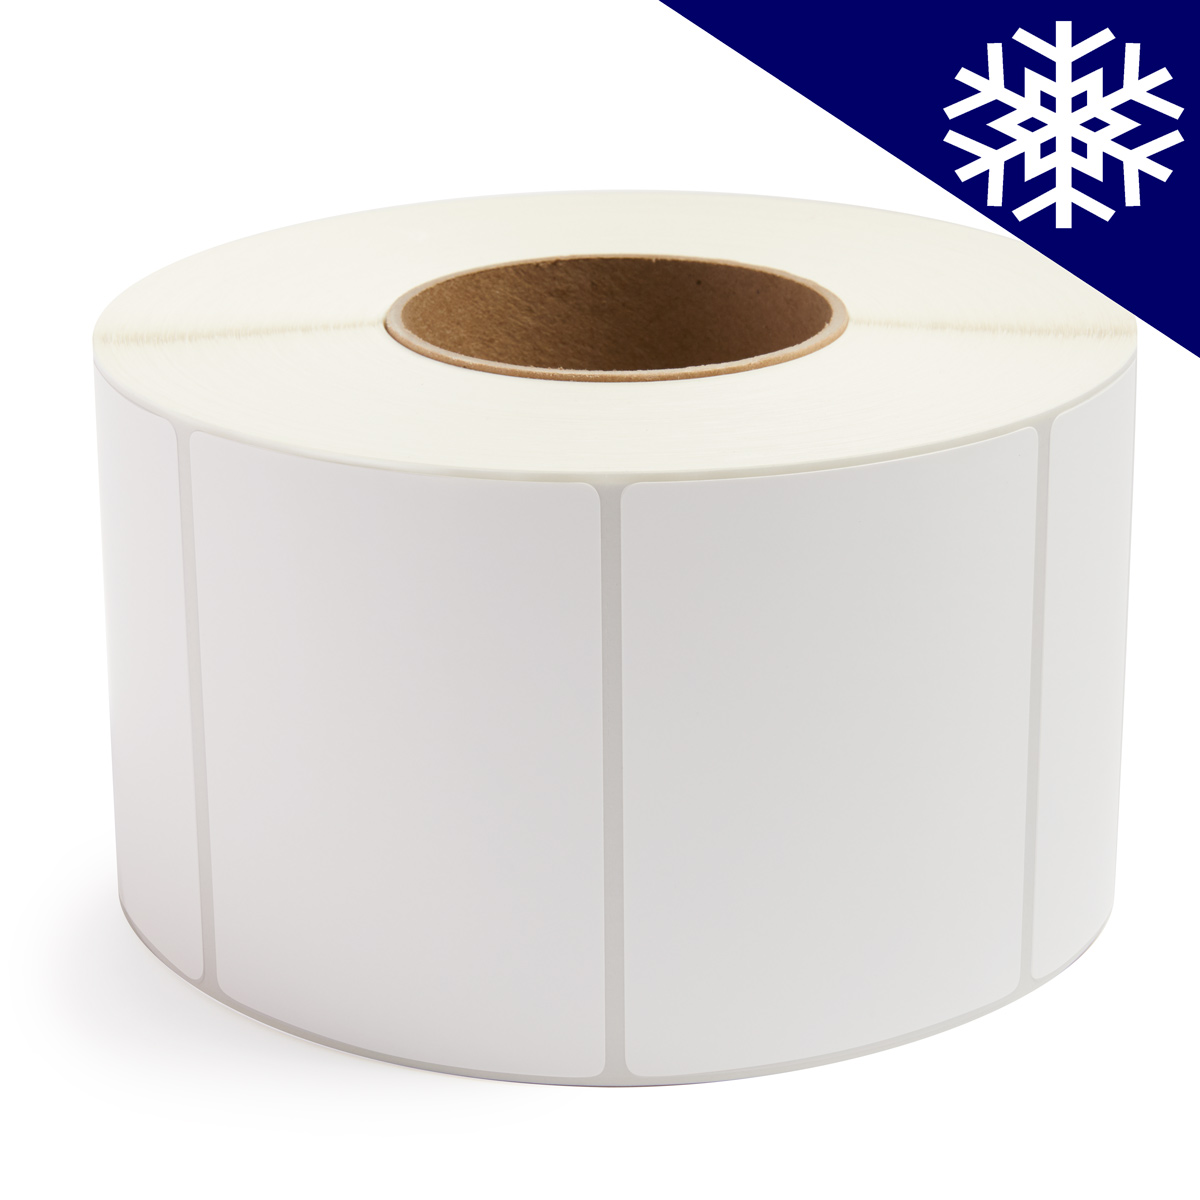 4x3 Direct Thermal Freezer Labels - Save At Least 27% With